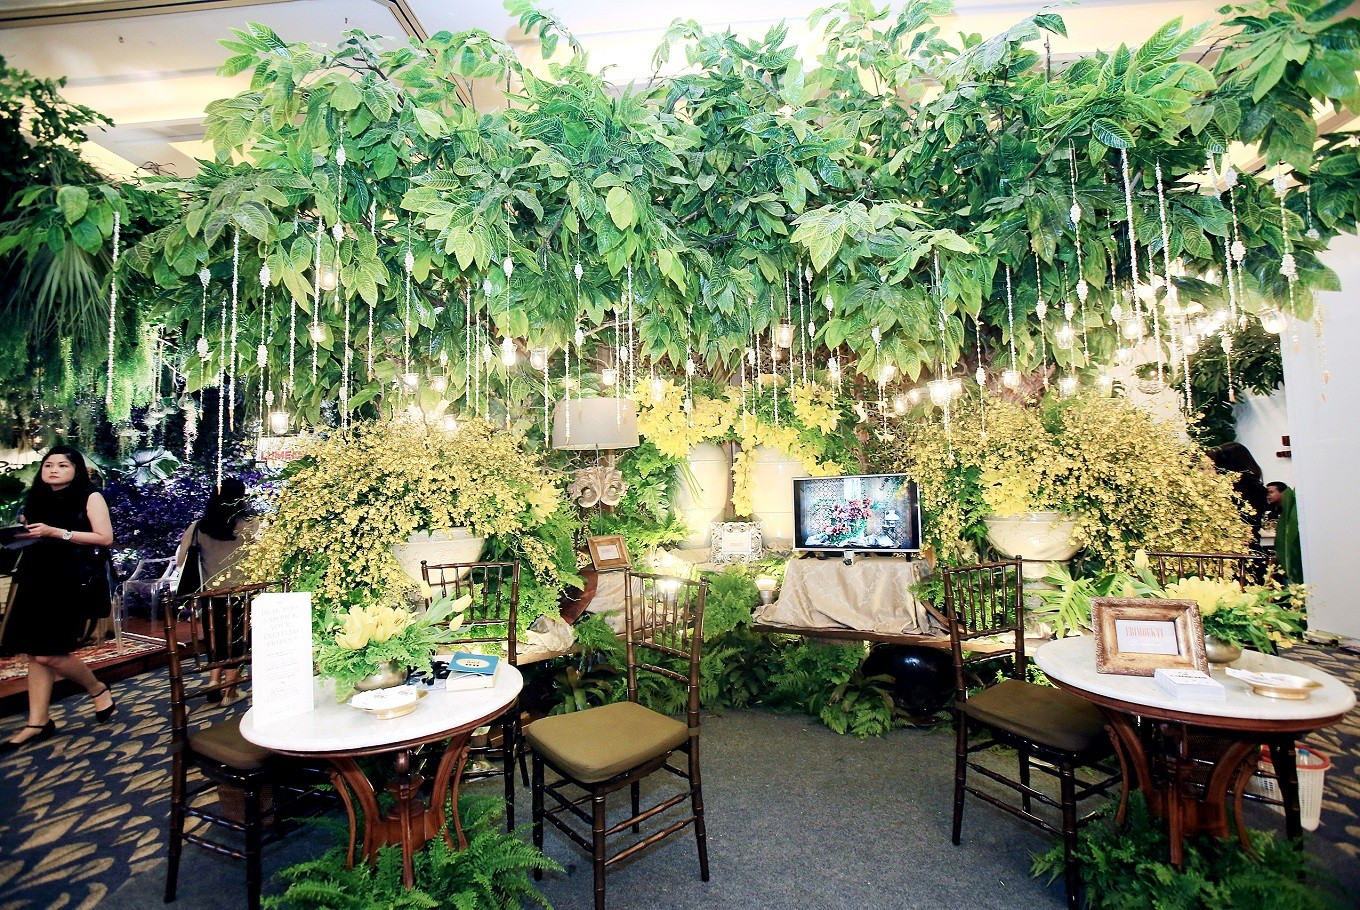 Wedding expo helps couples tying the knot lifestyle the jakarta post green and lush decorations with a strong botanical element are on display during the exhibitionjpdhoni setiawan junglespirit Choice Image